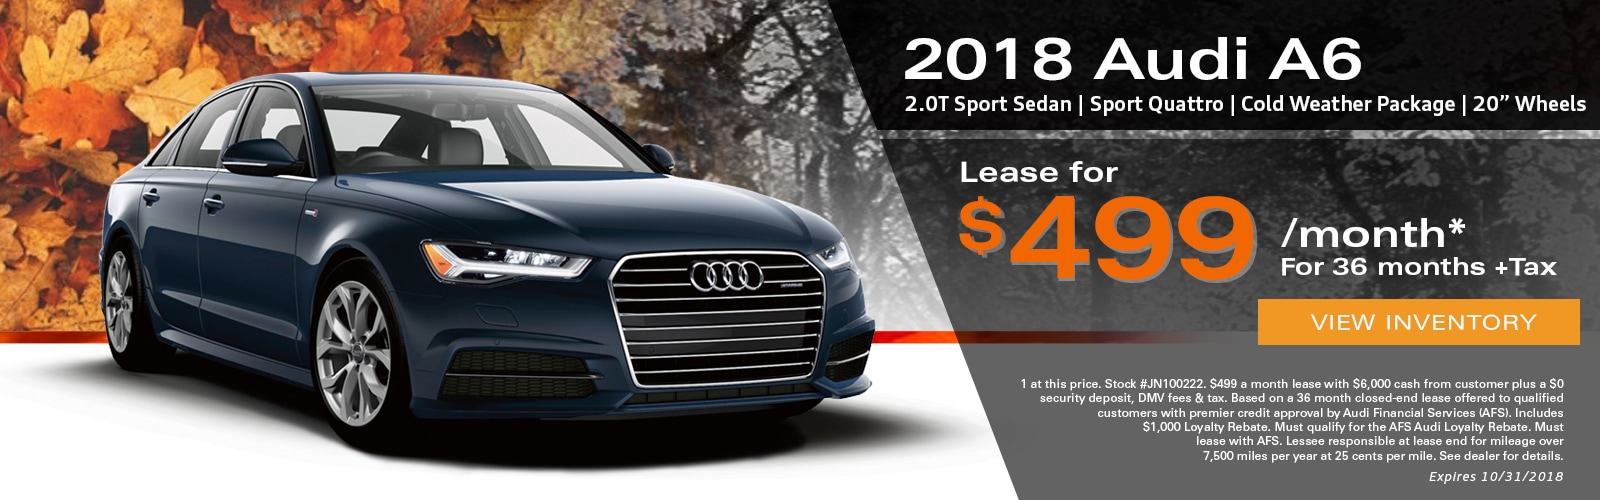 Audi Lease Specials Audi Finance Audi Palo Alto Serving San - Audi san francisco service